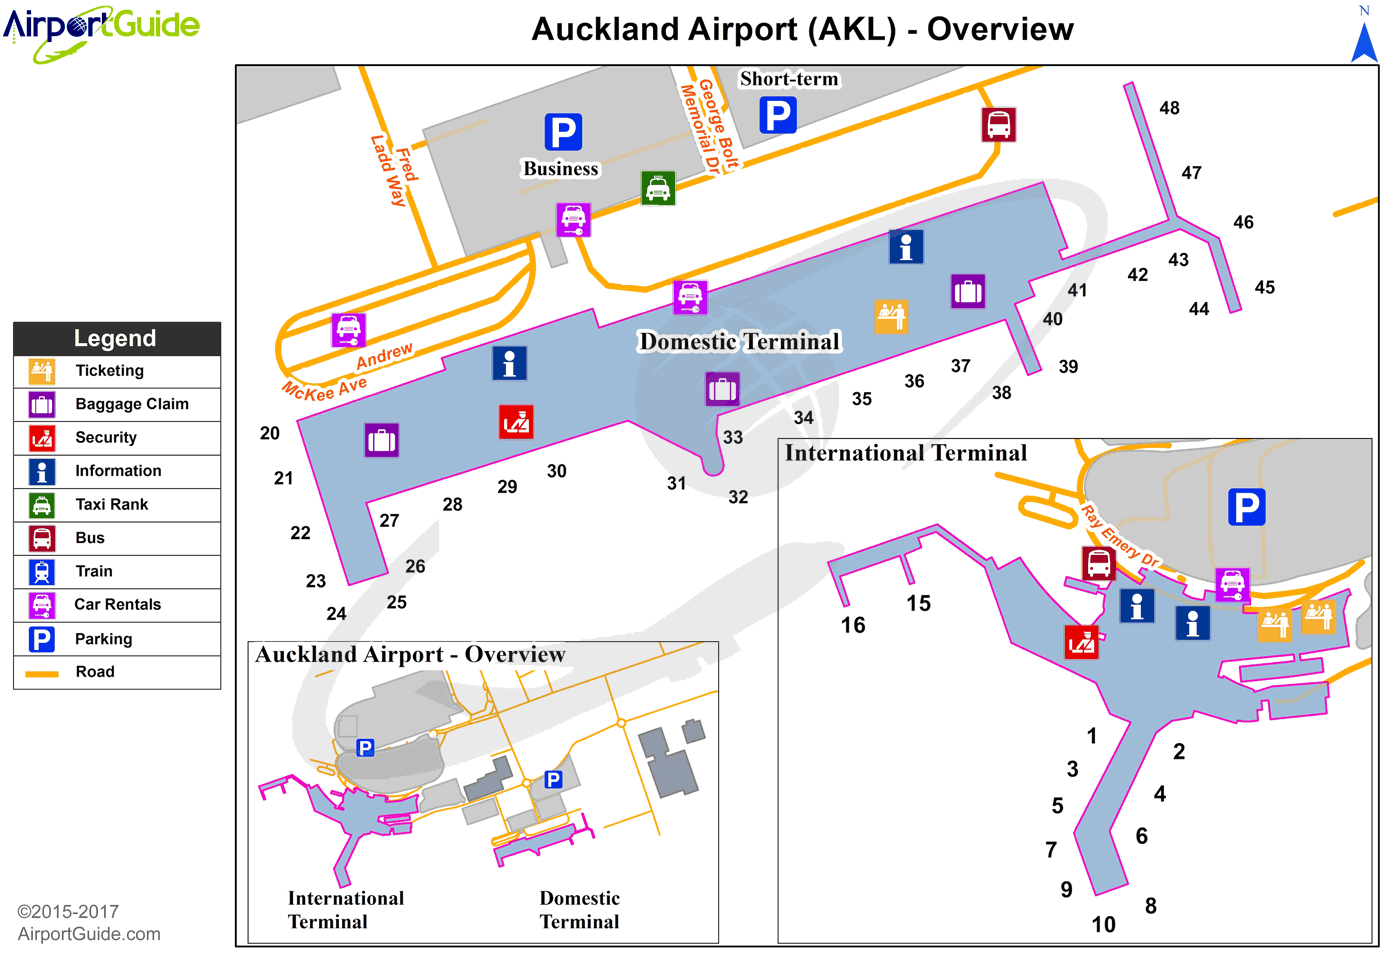 Auckland - Auckland International (AKL) Airport Terminal Map - Overview